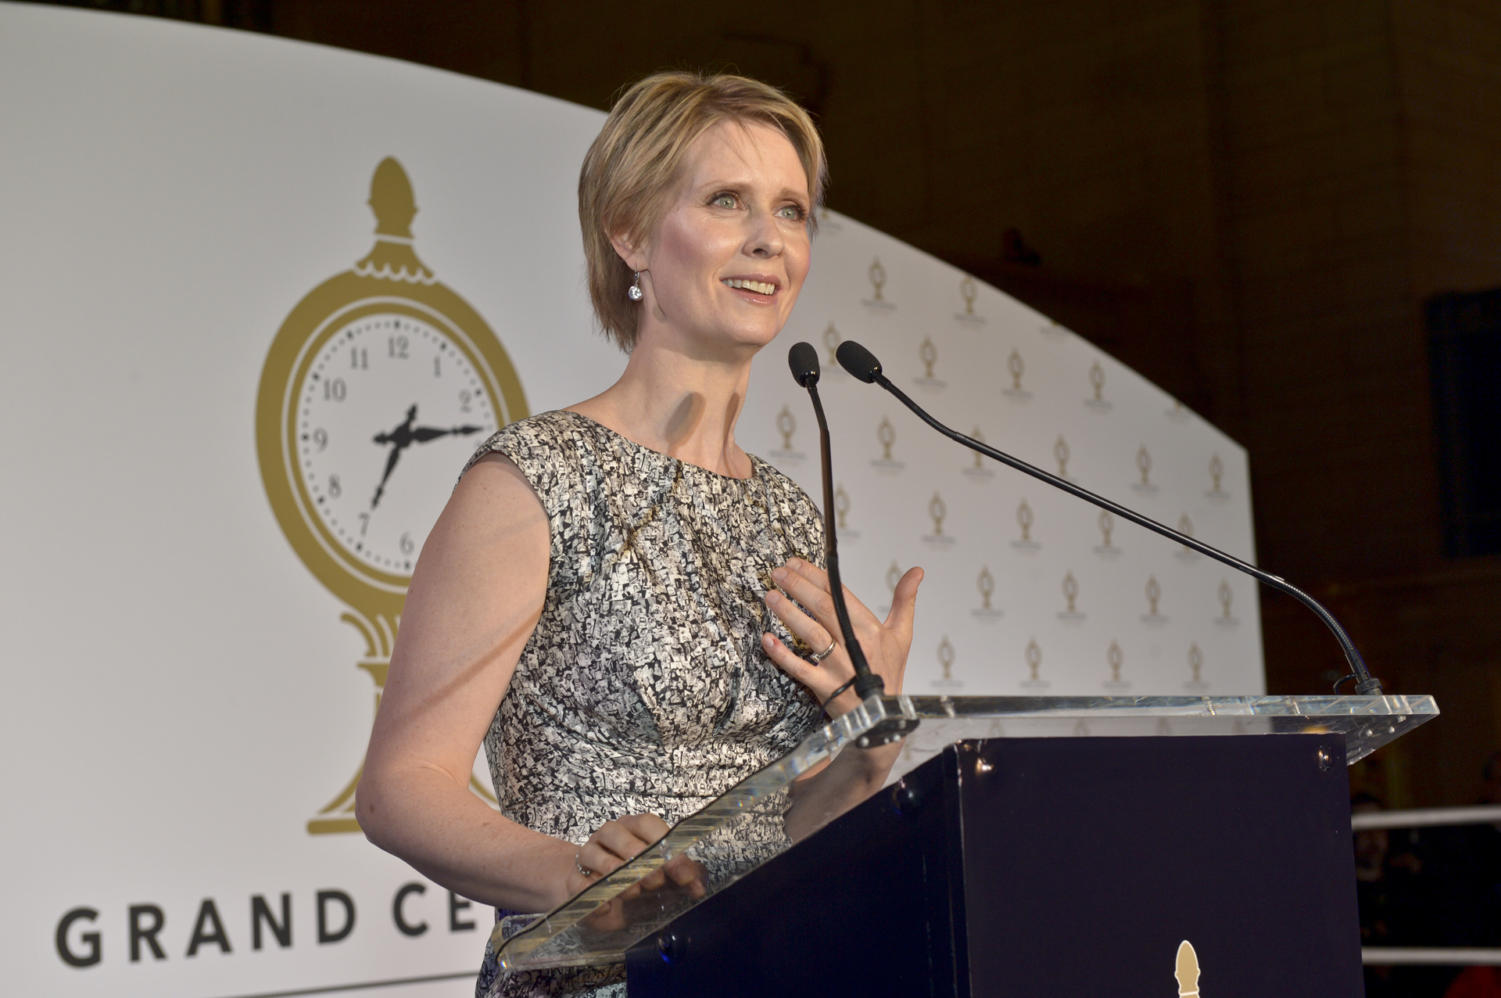 Cynthia Nixon will go head-to-head with Governor Andrew Cuomo this Thursday to decide the Democratic nominee for November's Gubernatorial race, which will have a major impact on the Pace community. Photo Courtesy of Metropolitan Transportation Authority.